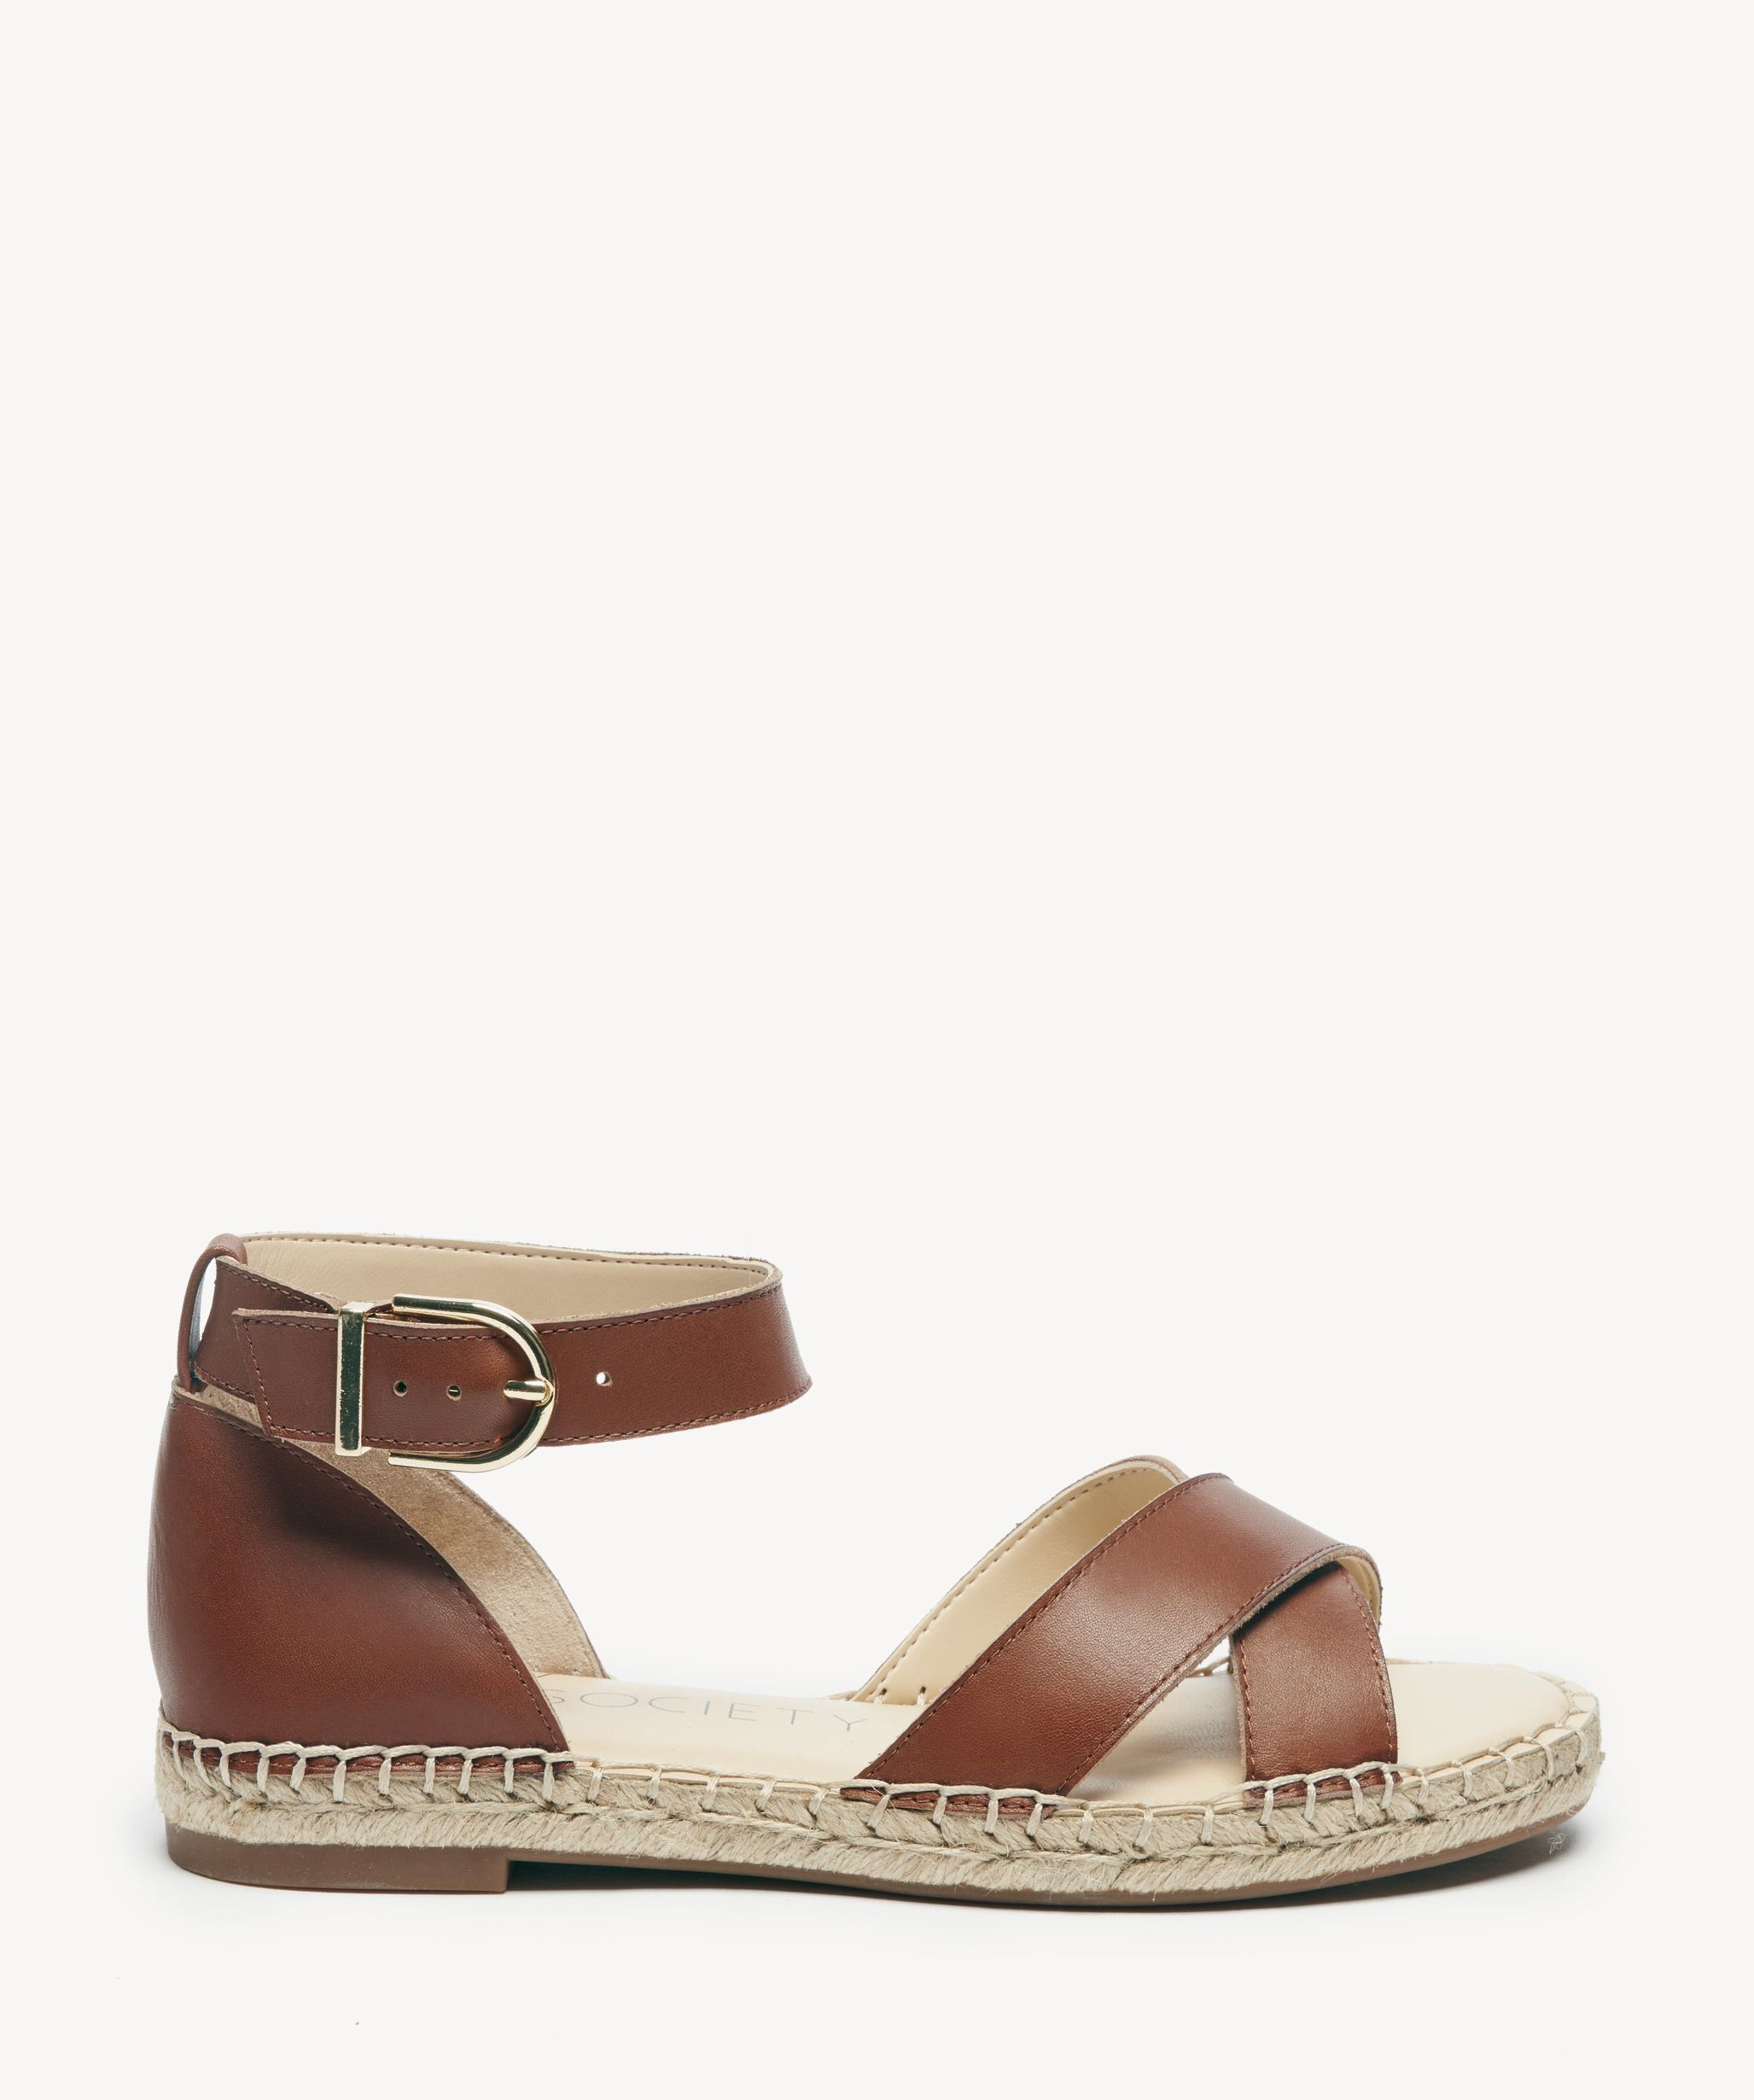 f1100ac410 Sole Society Saundra Espadrille Sandals Summer Cognac